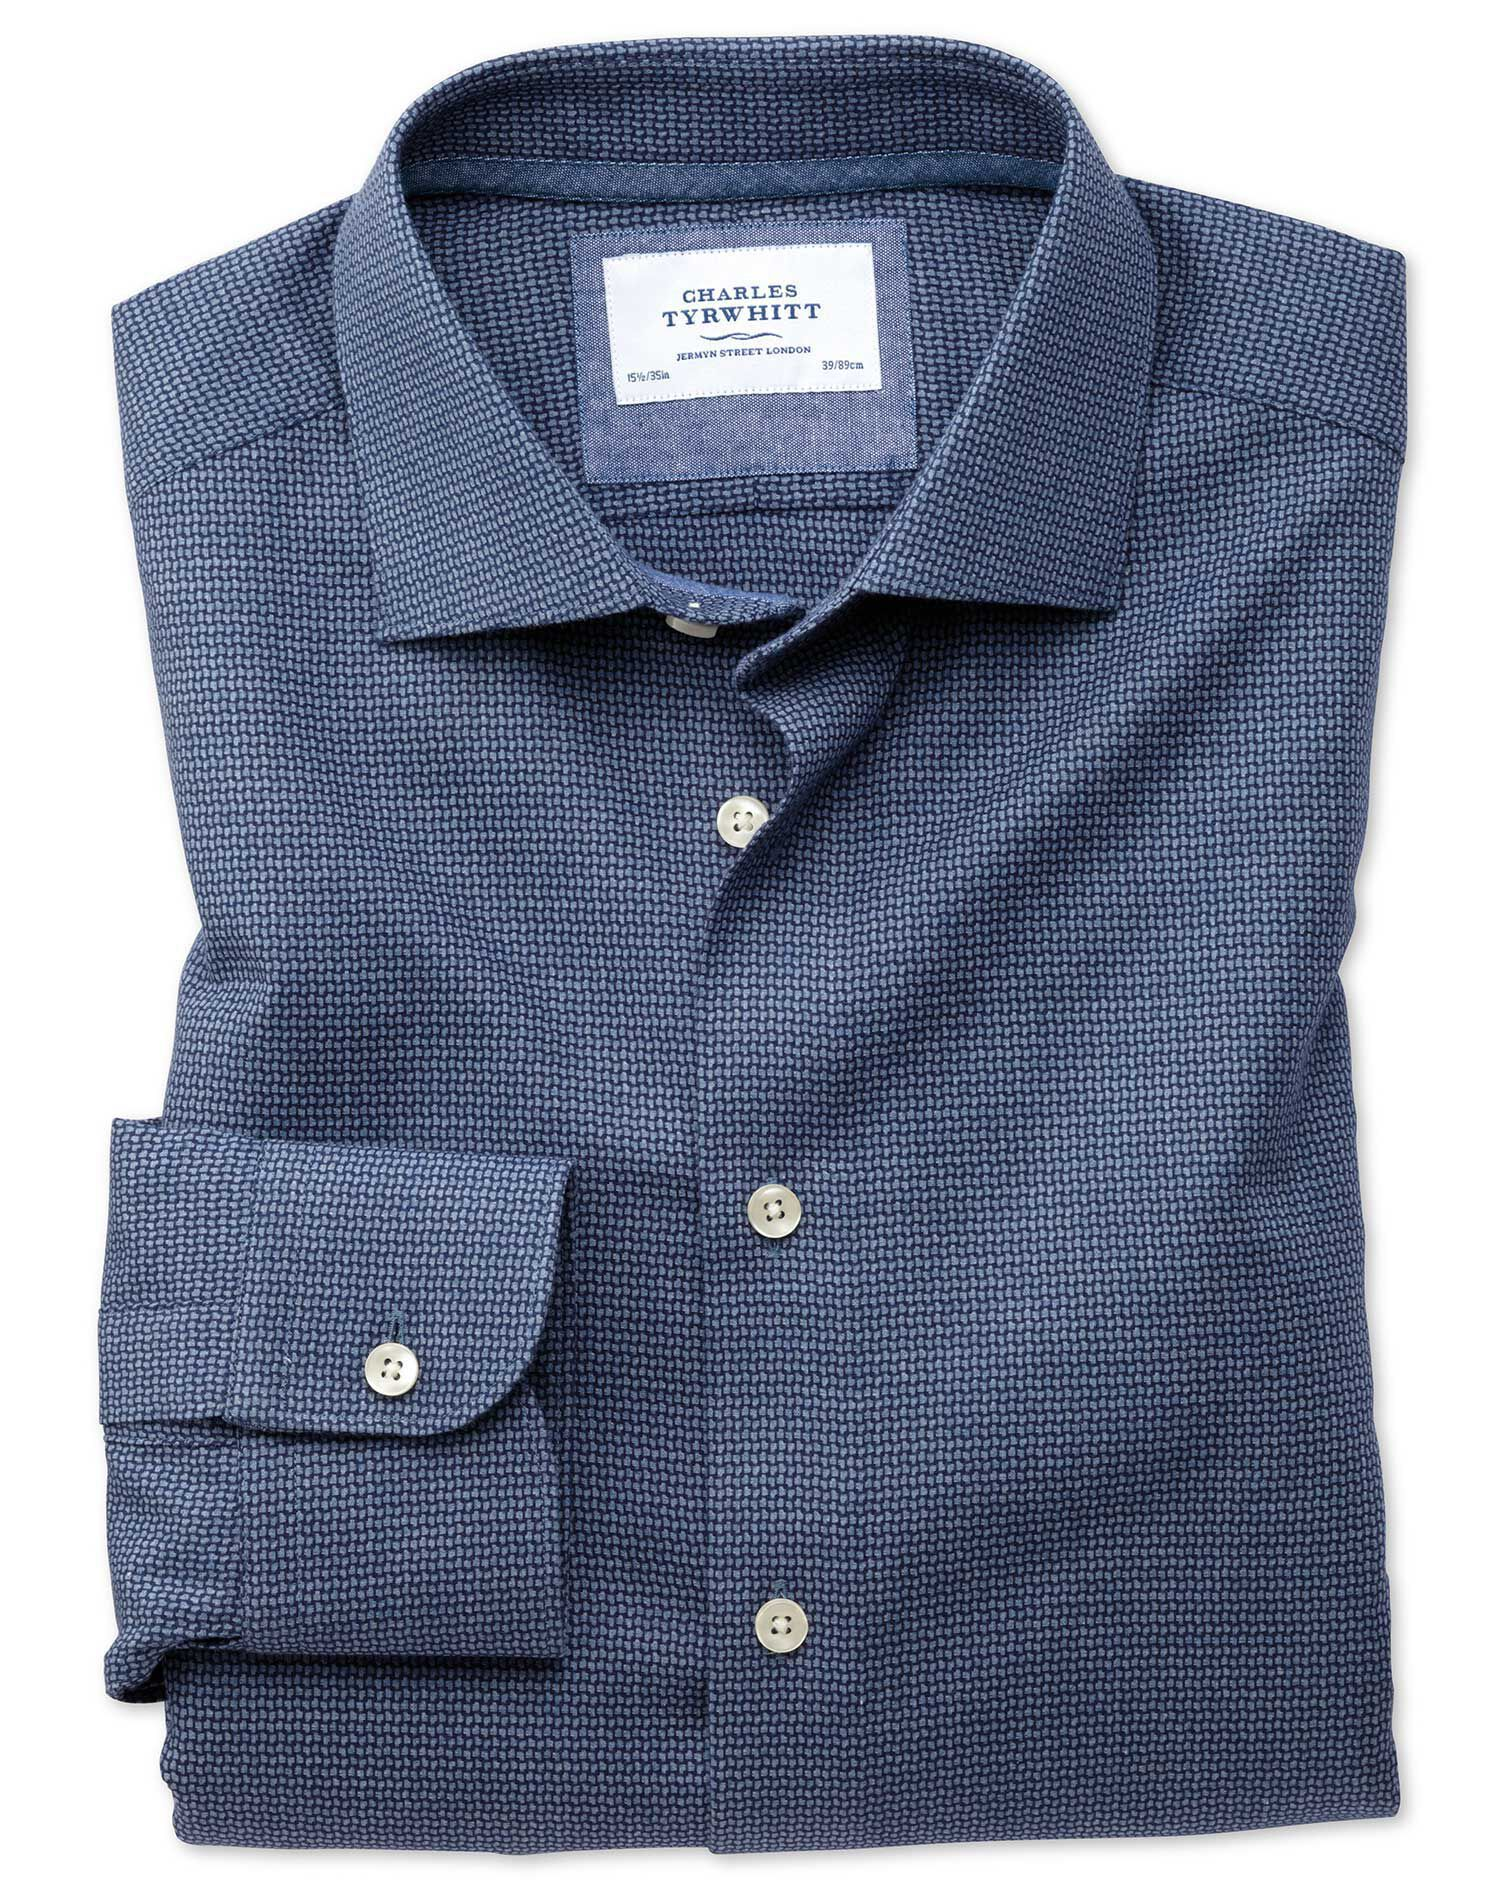 Classic Fit Semi-Cutaway Business Casual Navy Patterned Cotton Formal Shirt Single Cuff Size 15.5/34